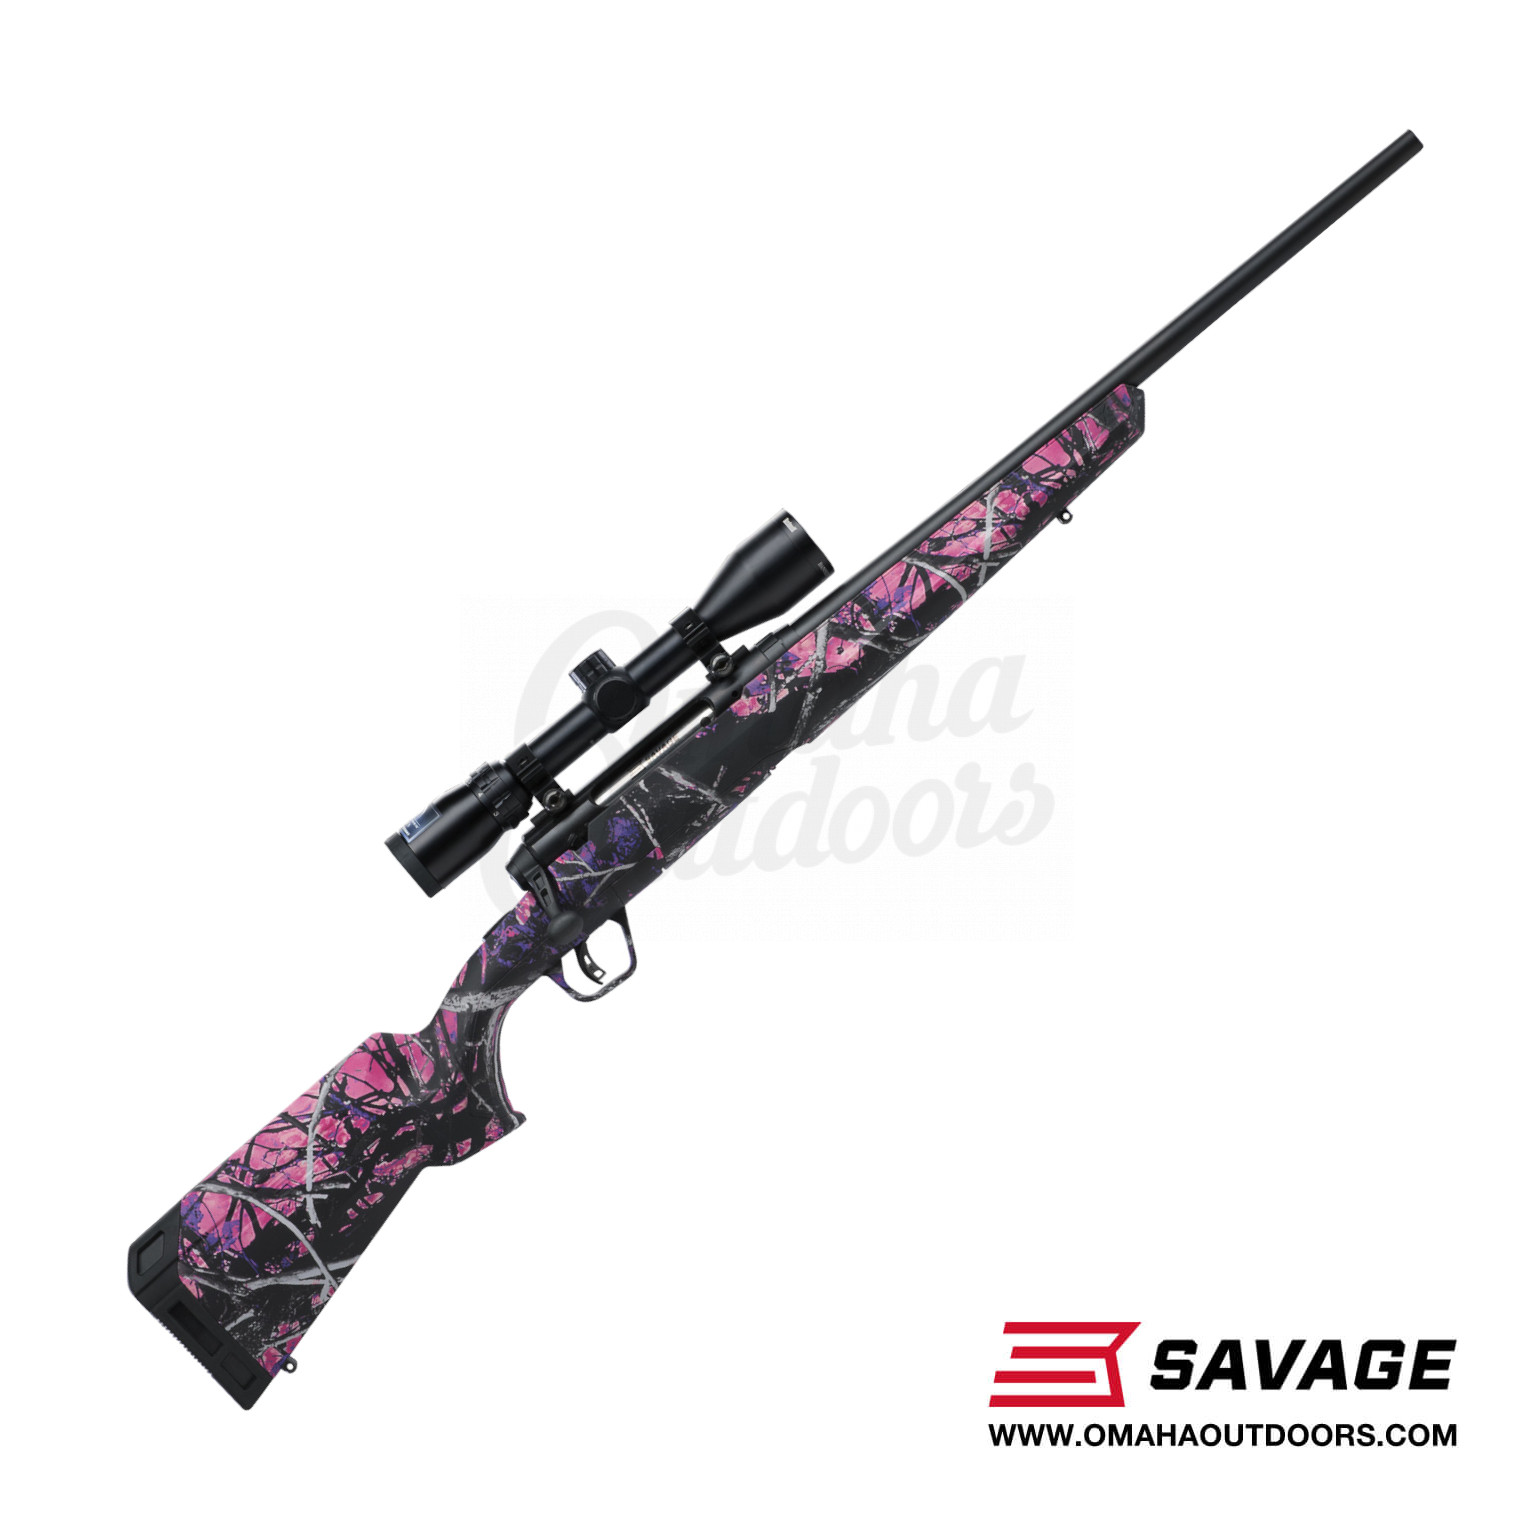 Savage Arms AXIS II XP Compact Muddy Girl Bolt Rifle 6.5